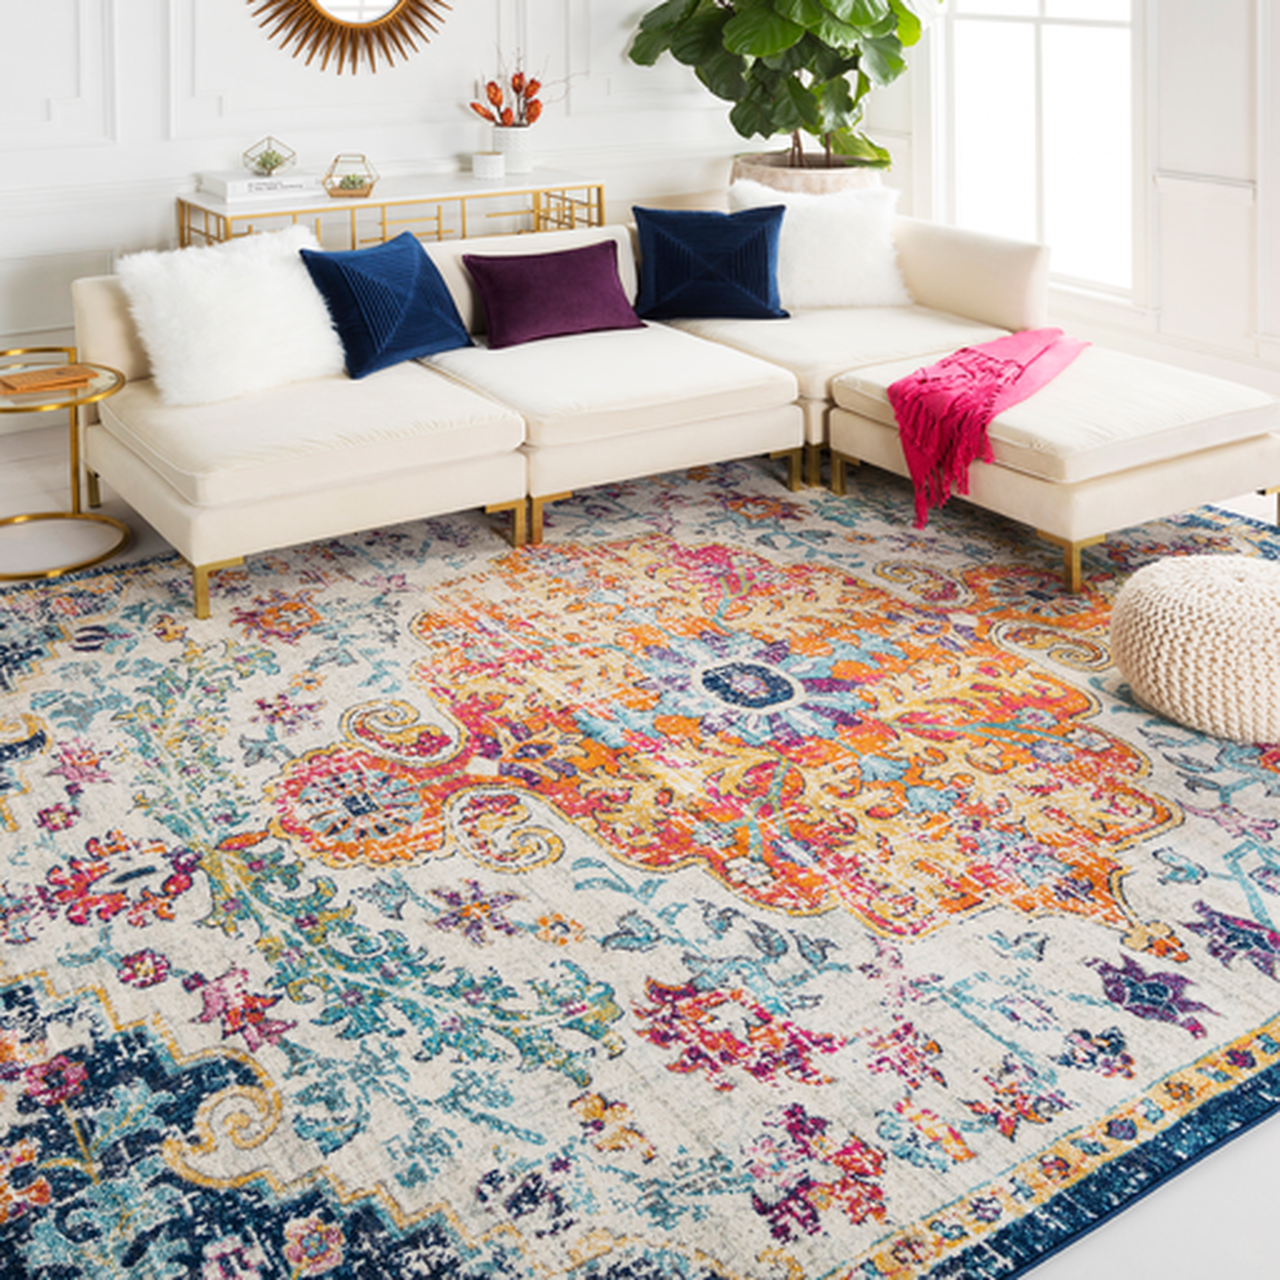 what to buy in july - area rugs